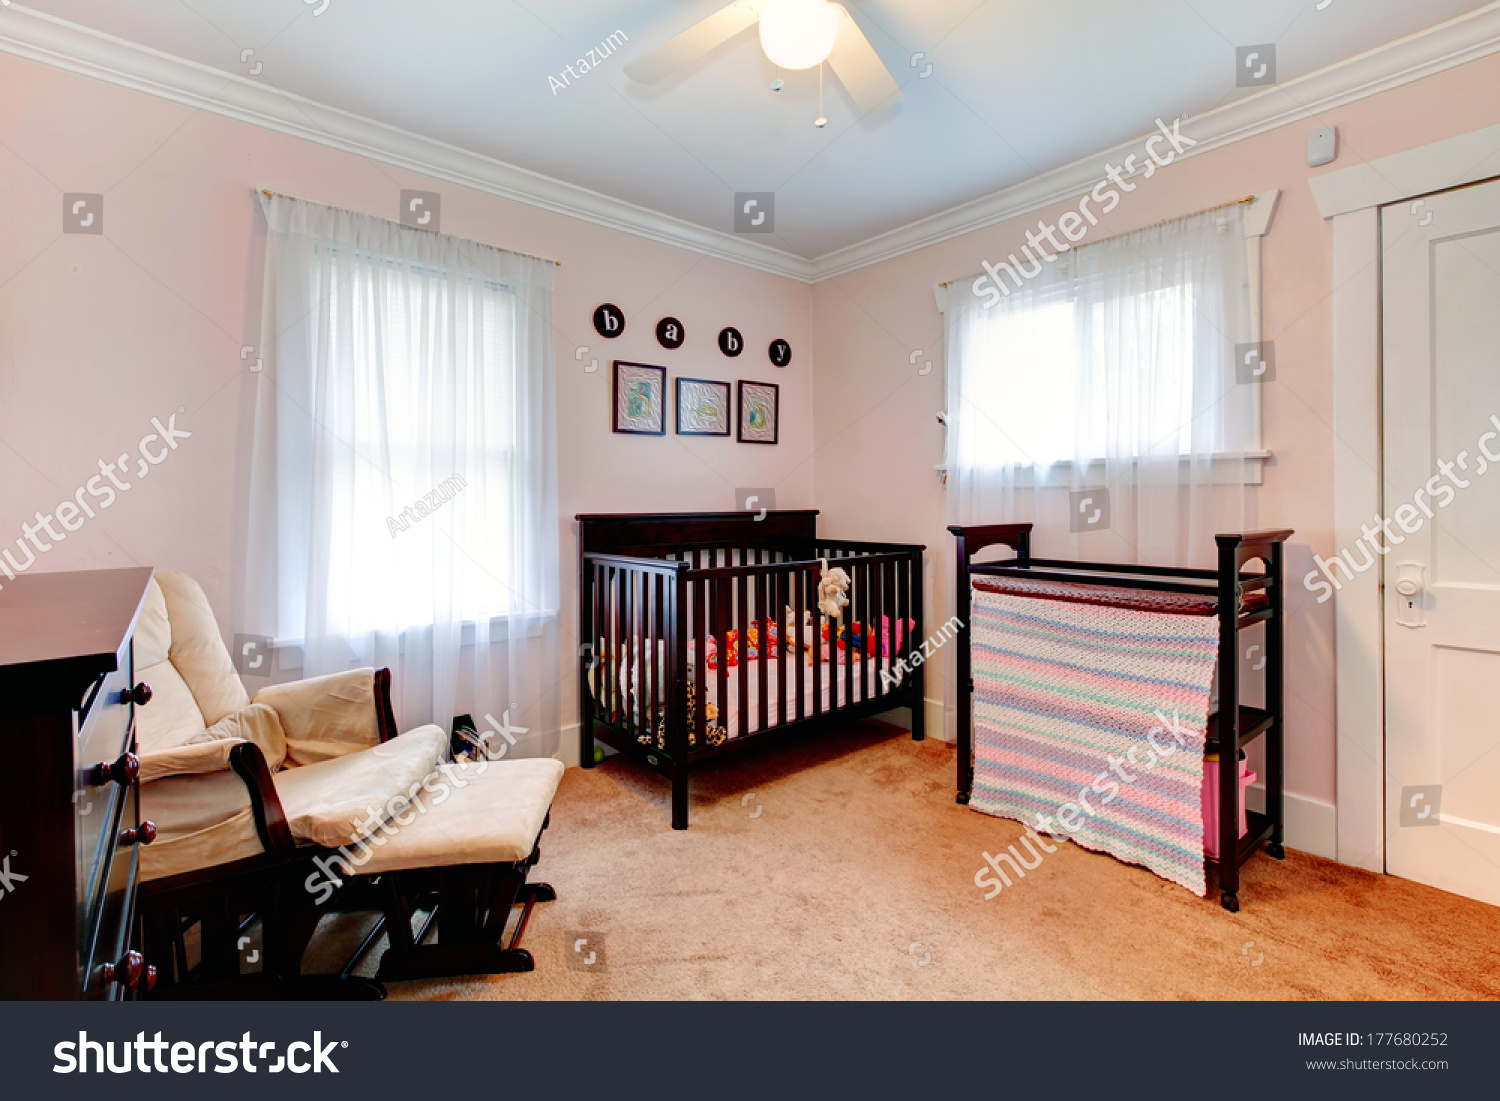 Bright nursery room light pink walls stock photo royalty free bright nursery room with light pink walls carpet floor furnished with dark brown wooden aloadofball Choice Image